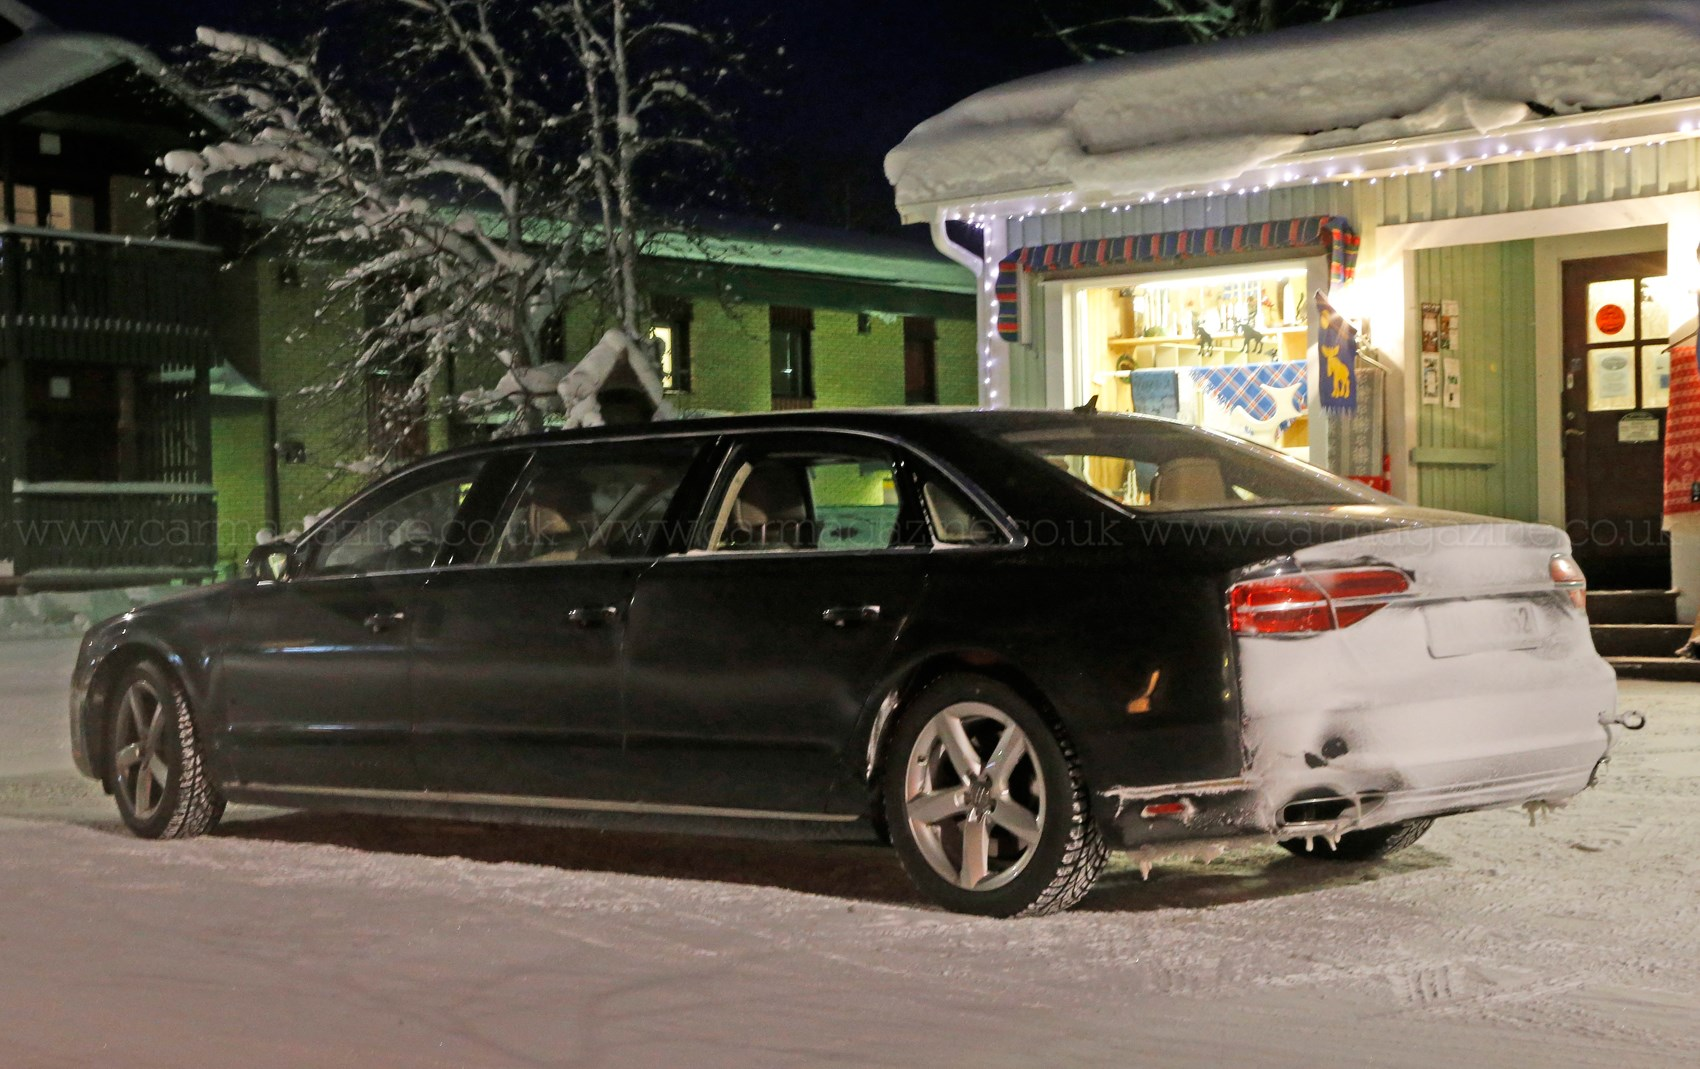 And Stretch Mystery Six Door Audi A8 Limo Spotted In